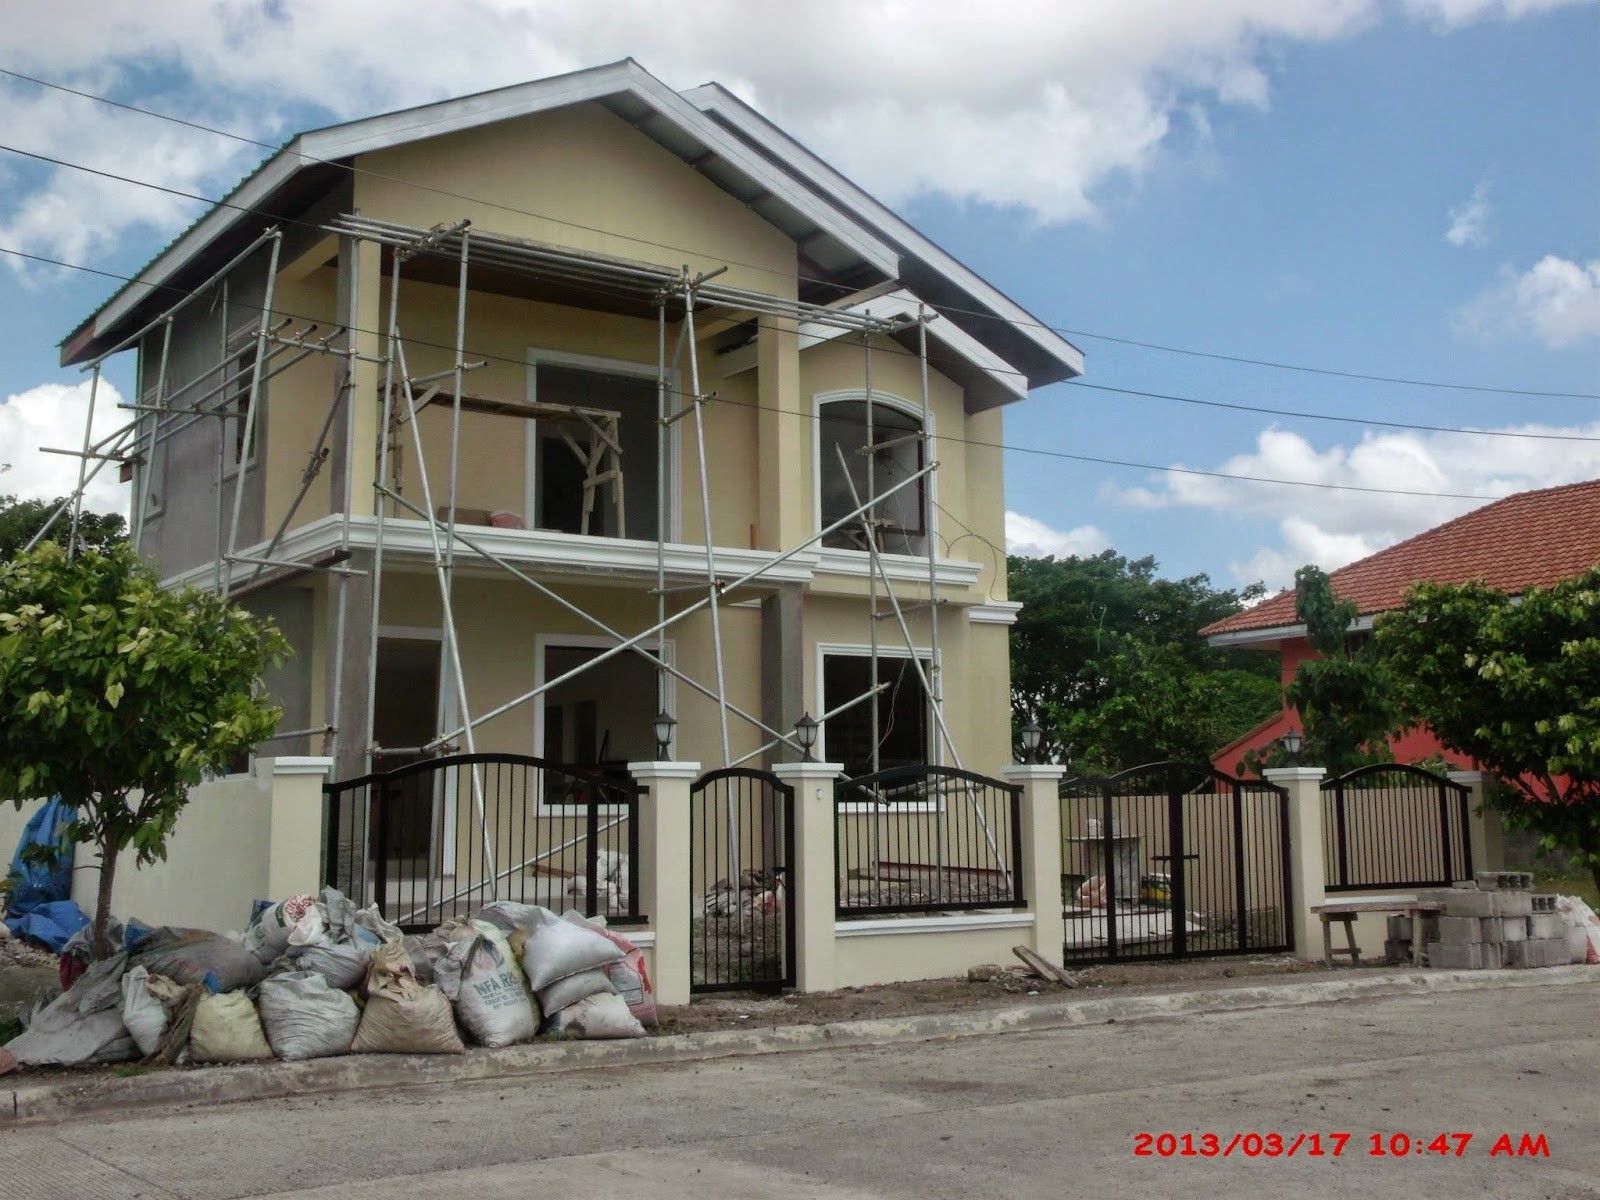 savannah trails house construction project in oton iloilo model houses in the philippines with floor plan iloil one story house plans philippines iloilo new